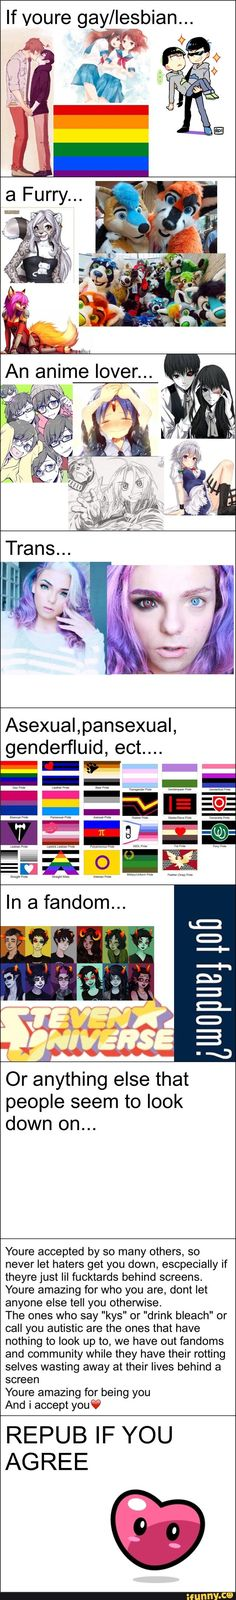 gay, furry, fandoms, accepted, repub